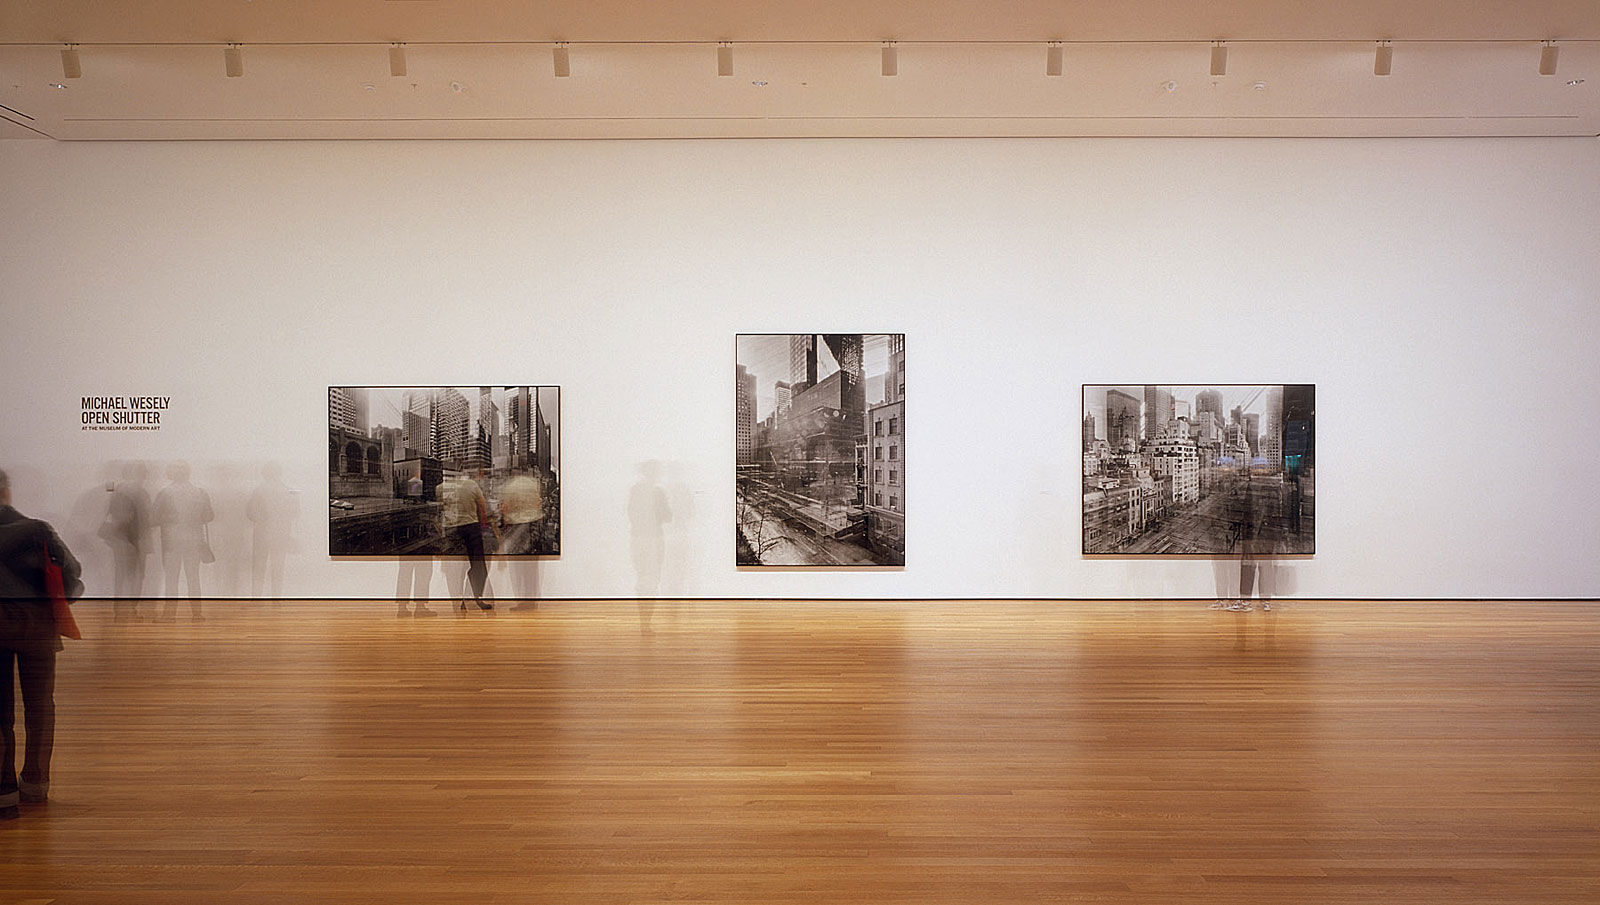 The Museum of Modern Art, New York (14.13 - 14.18 Uhr, 19.11.2004)